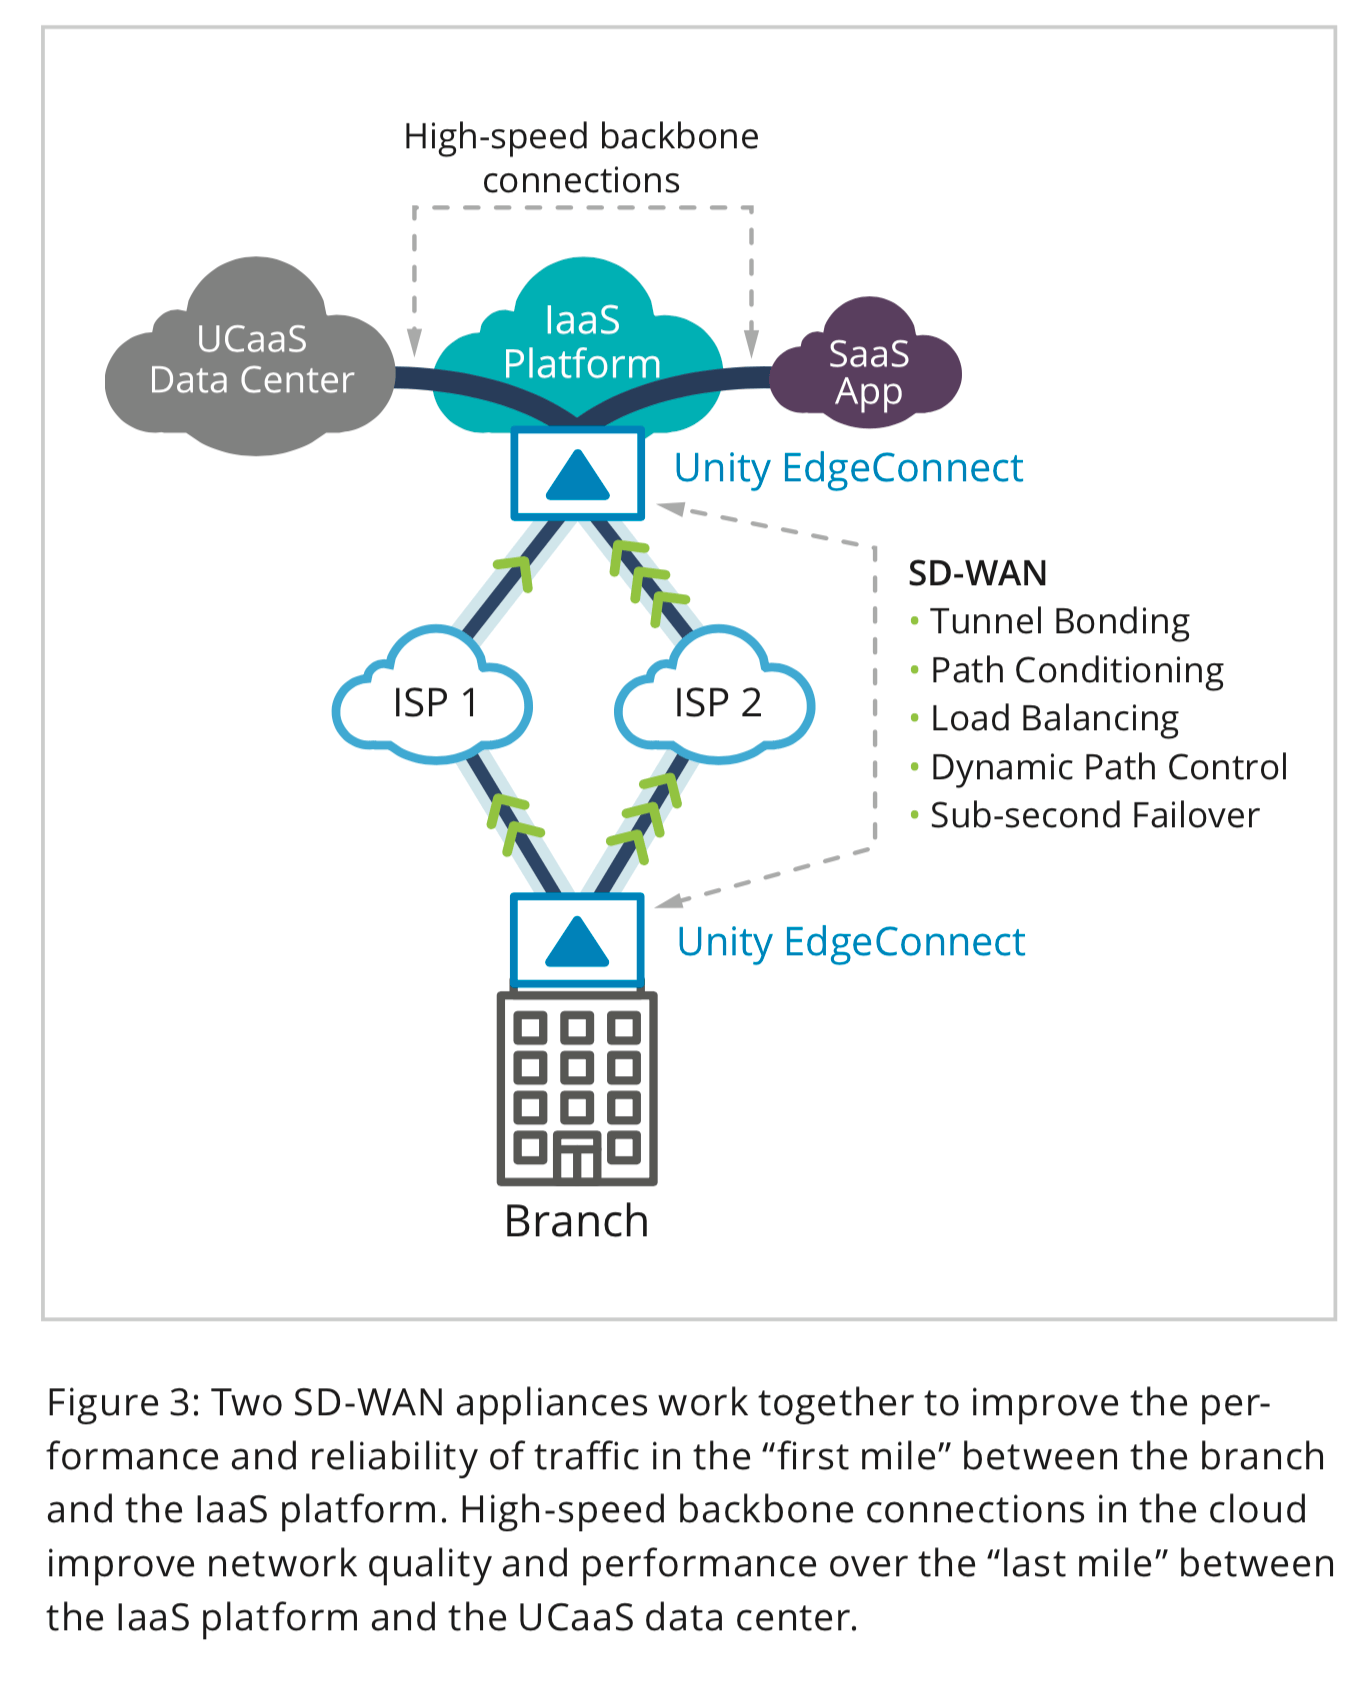 "Figure 3: Two SD-WAN appliances work together to improve the performance and reliability of traffic in the ""first mile"" between the branch and the IaaS platform. High-speed backbone connections in the cloud improve network quality and performance over the ""last mile"" between the IaaS platform and the UCaaS data center."